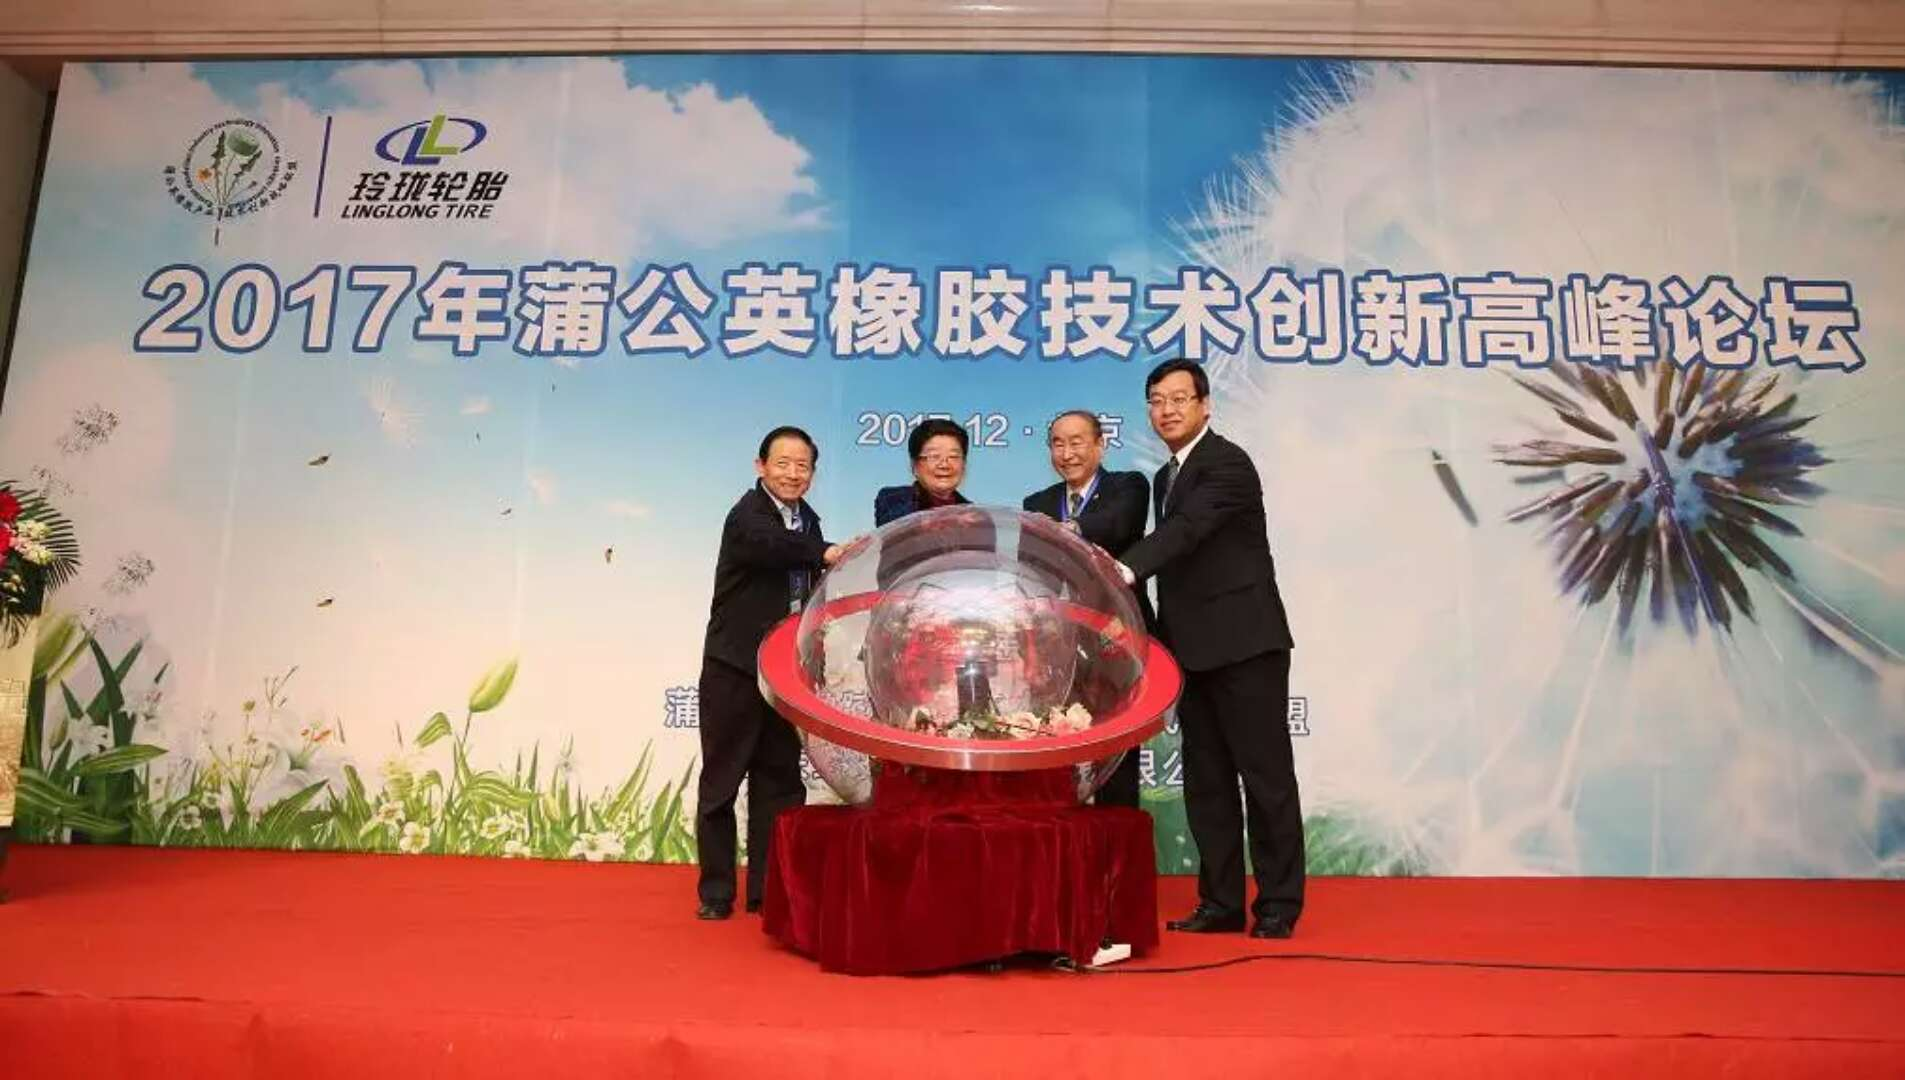 Linglong Tire to Set up Company for Commercialization of Dandelion Rubber